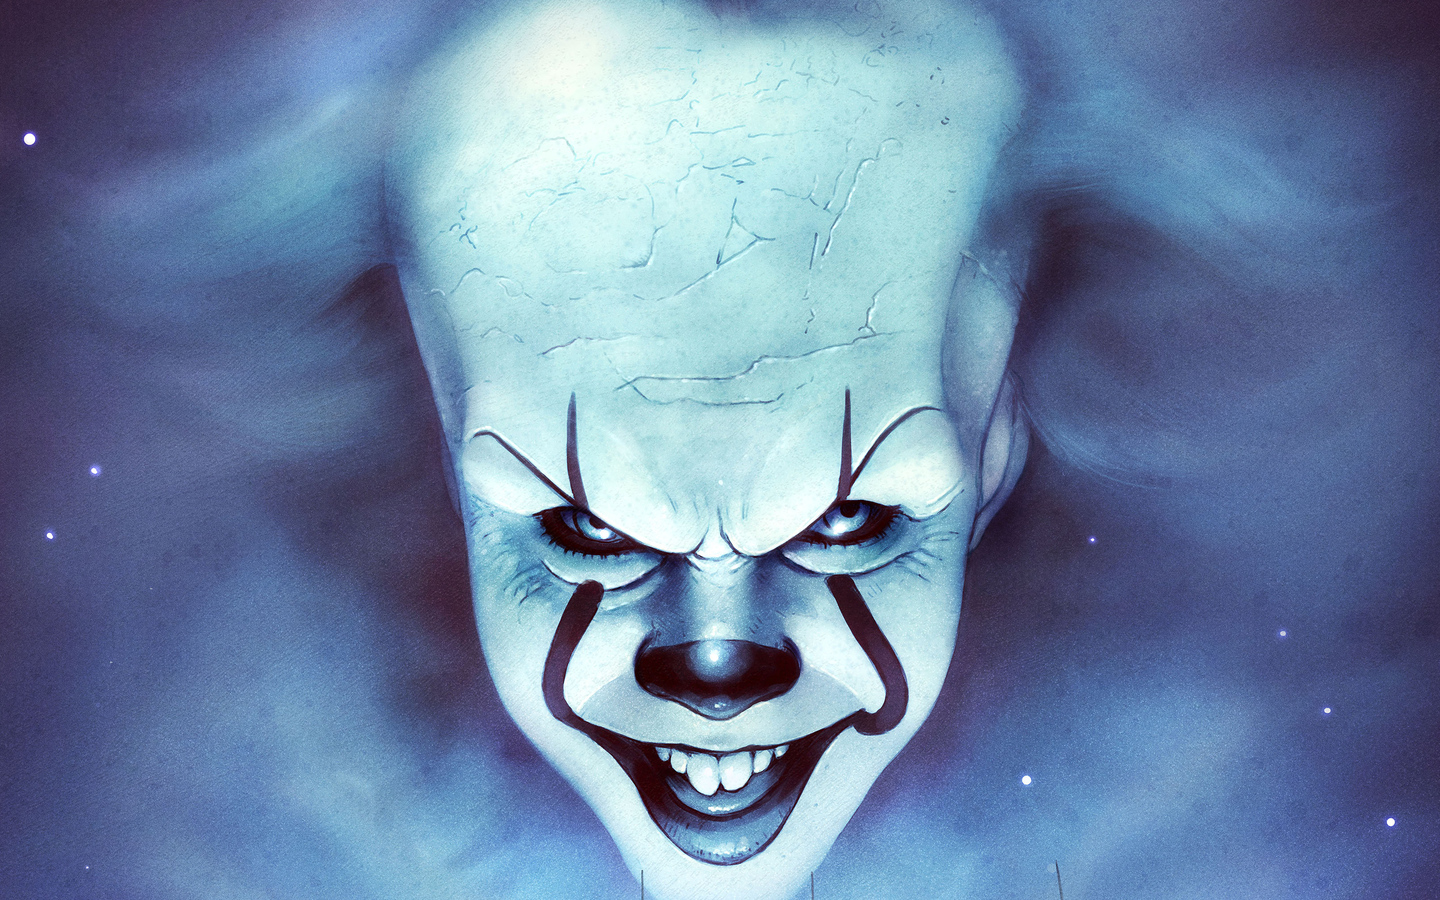 pennywise-the-clown-fanartwork-9a.jpg